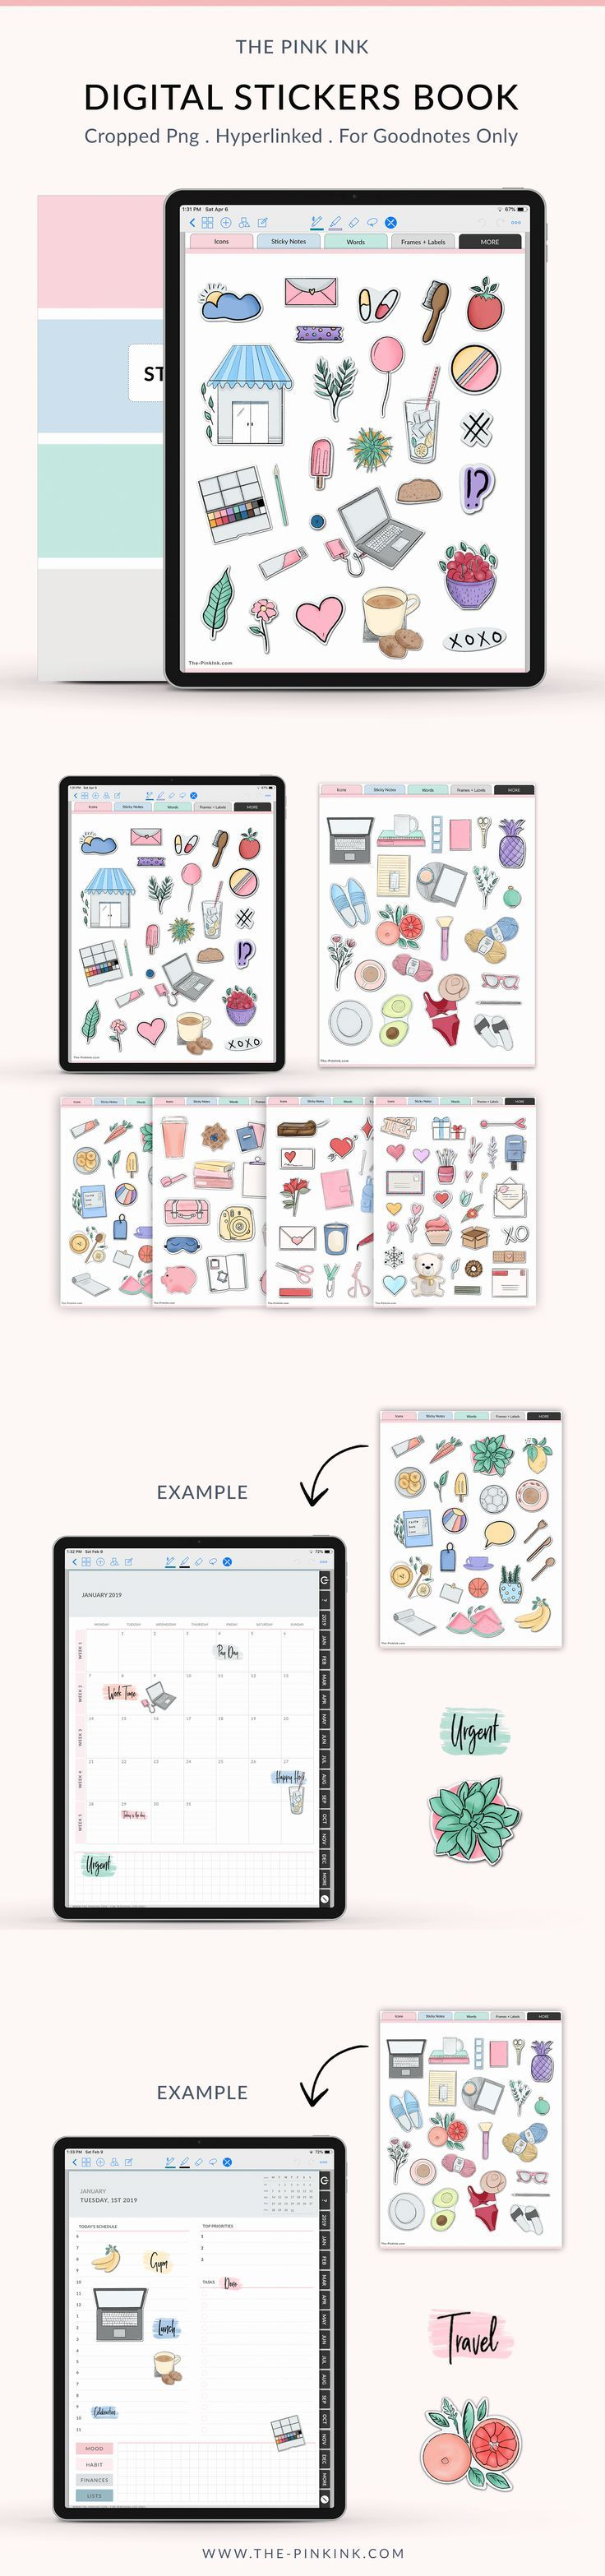 Digital sticker book planner for goodnotes 500 stickers pre cropped and installed